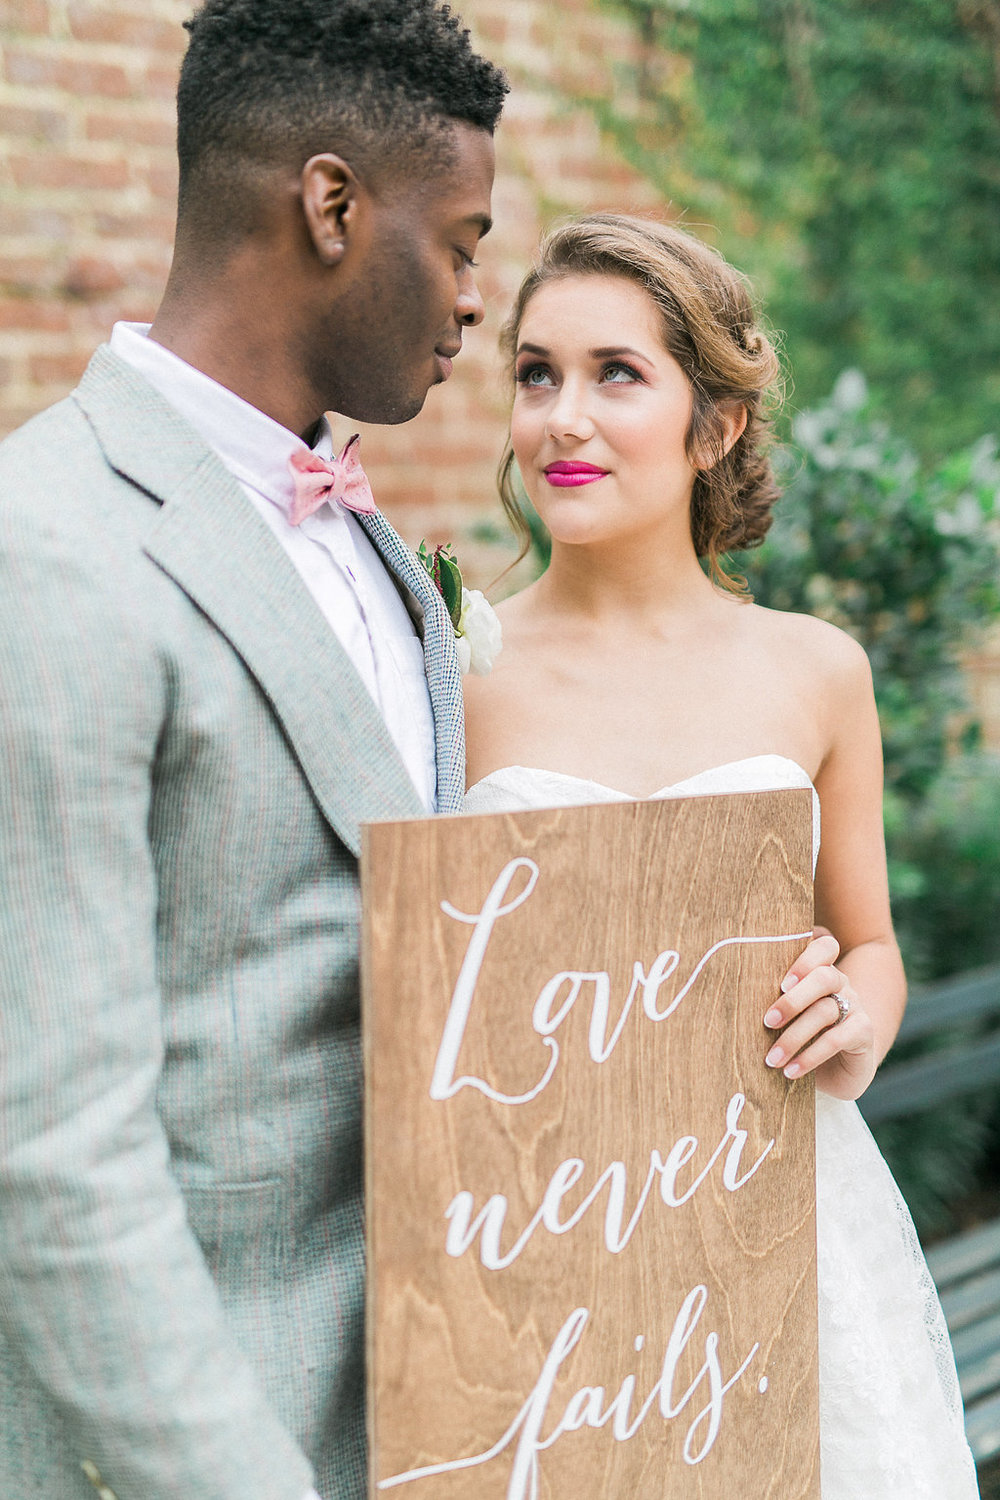 charleston spring brunch elopement pop up wedding planners at the parsonage - atlanta, greenville wedding planners - scarlet plan _ design (396).jpg